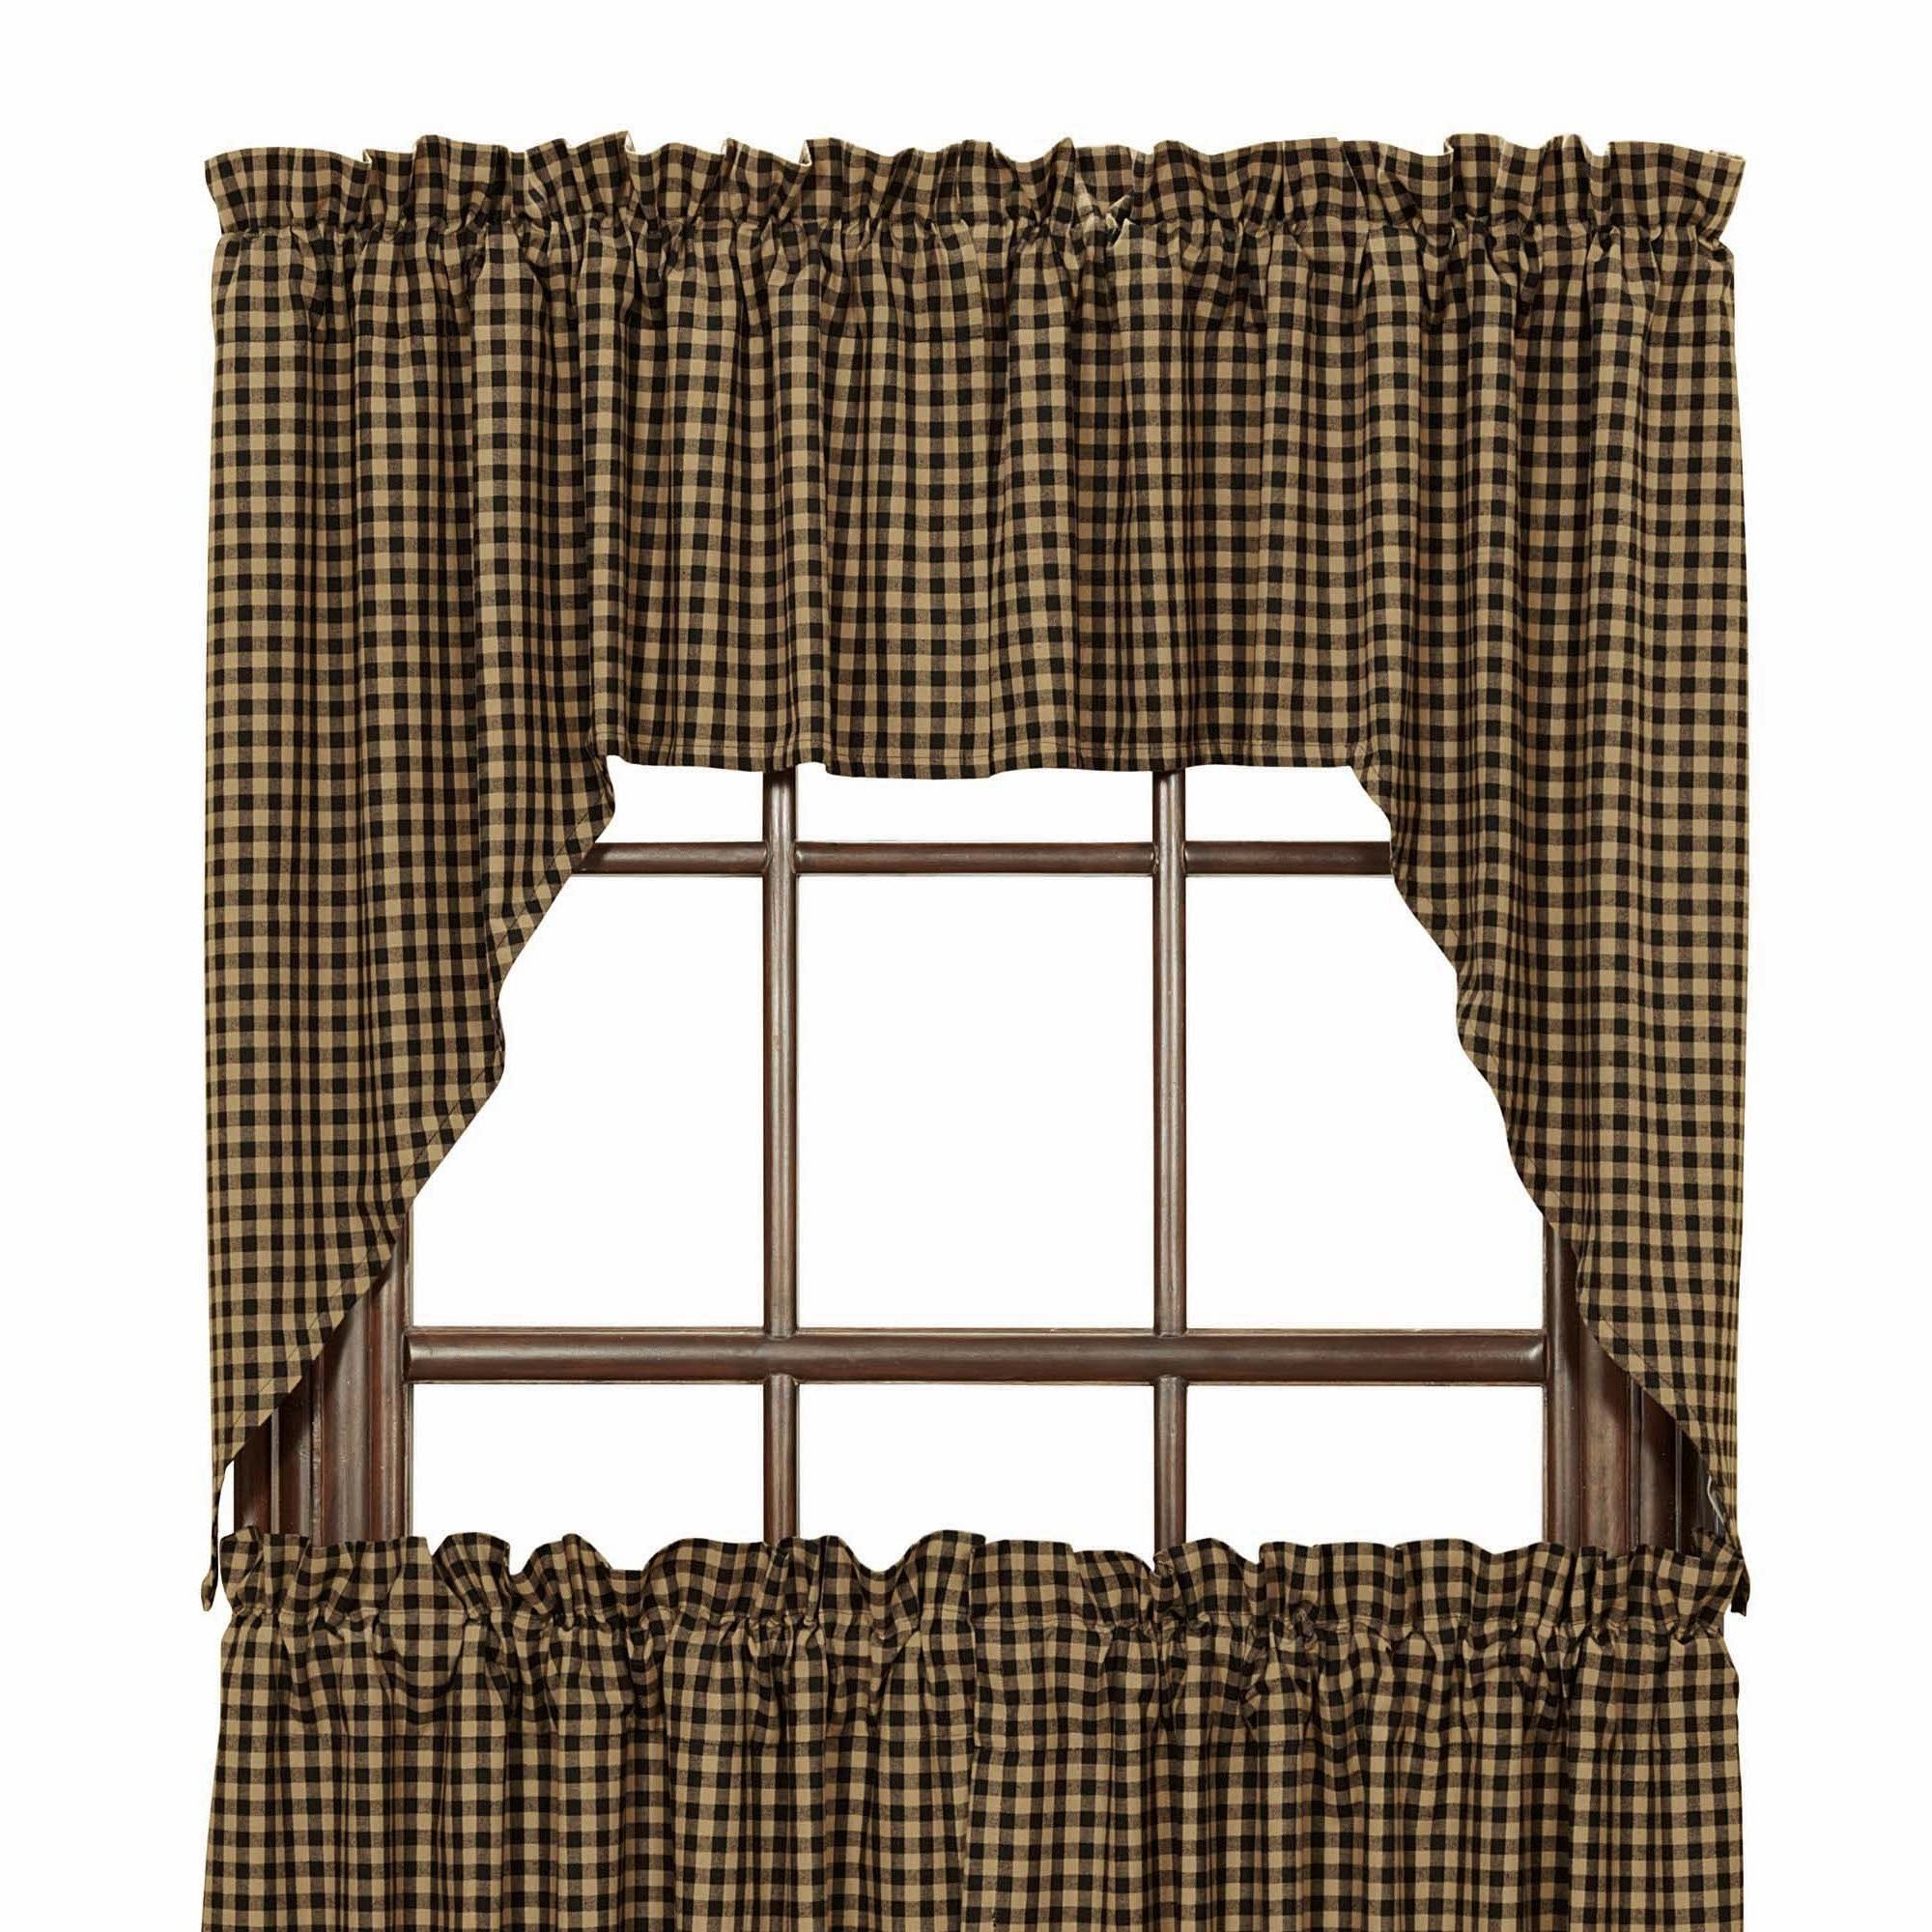 Black Check Scalloped Lined Swag Curtains | Swag curtains ...